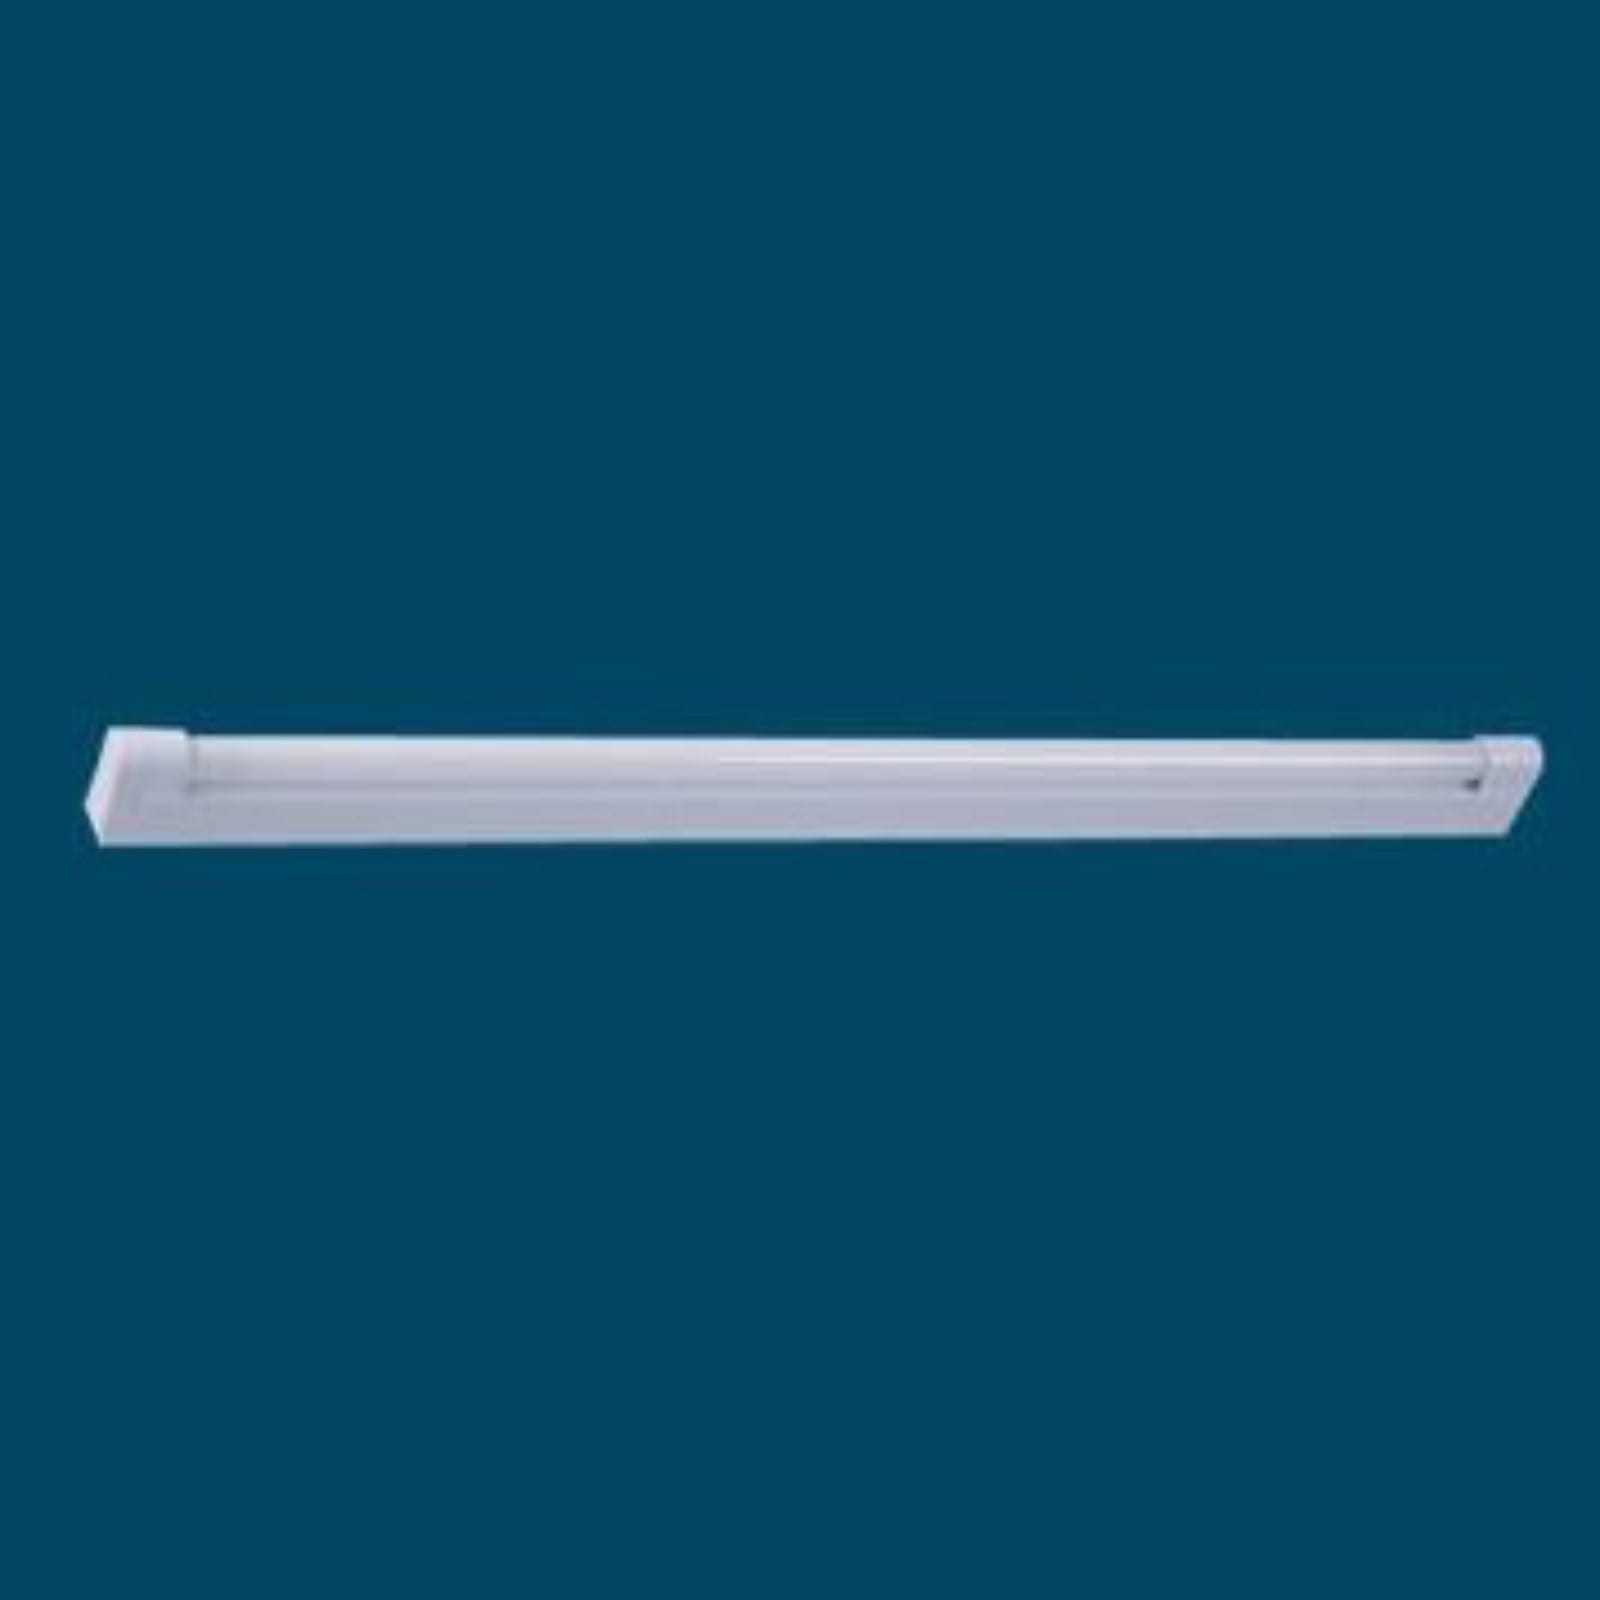 Striplight TL4001-3 13W LED - Erstatter 21W